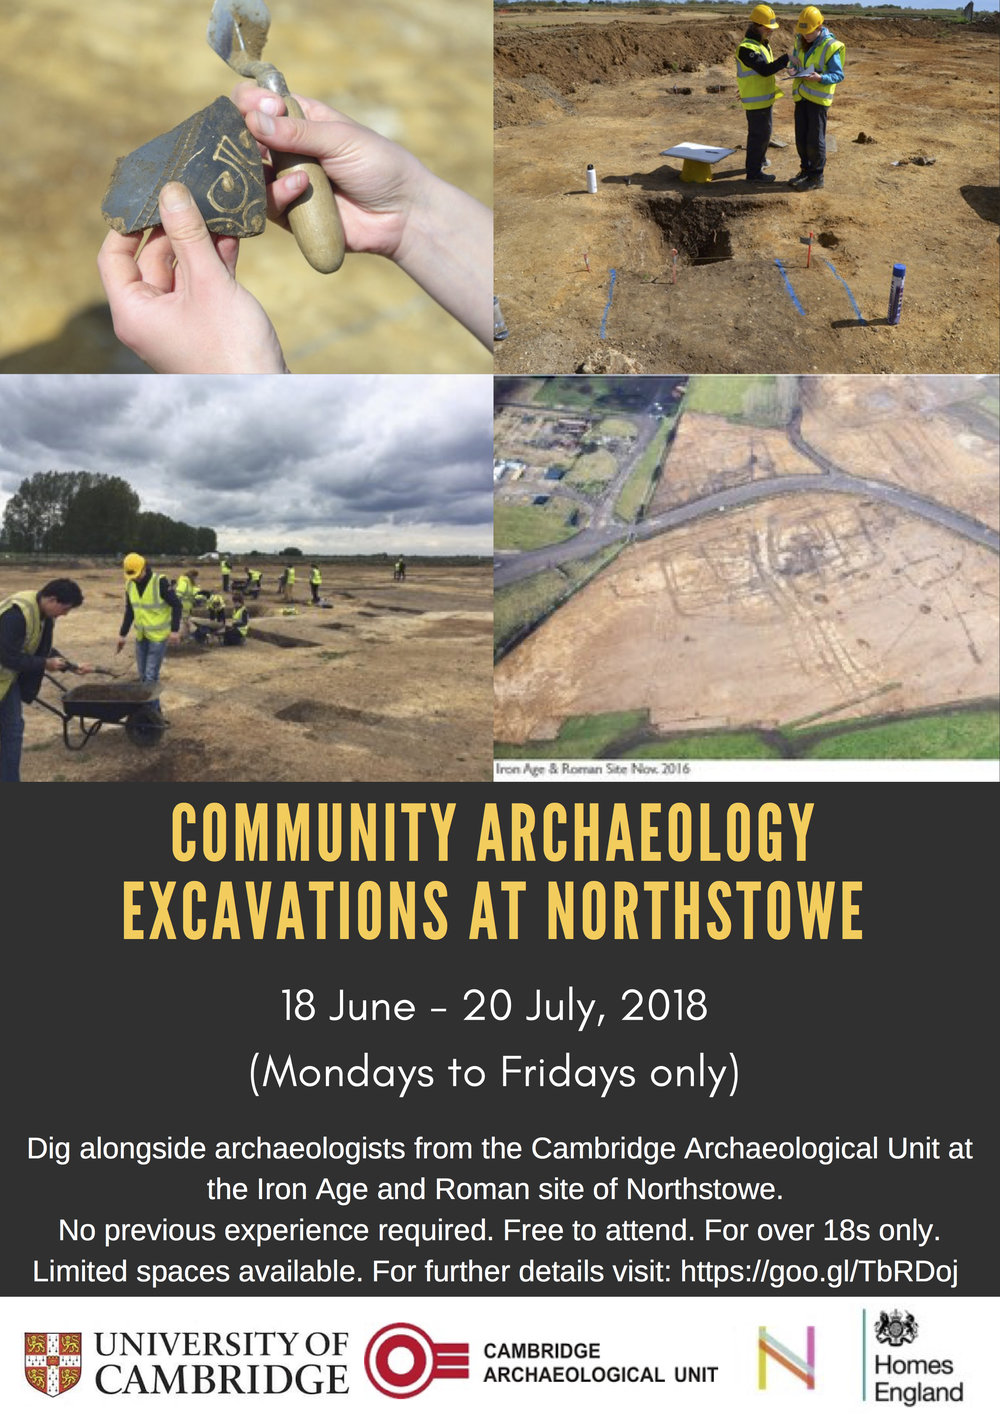 Northstowe community excavations June - July 2018.jpg